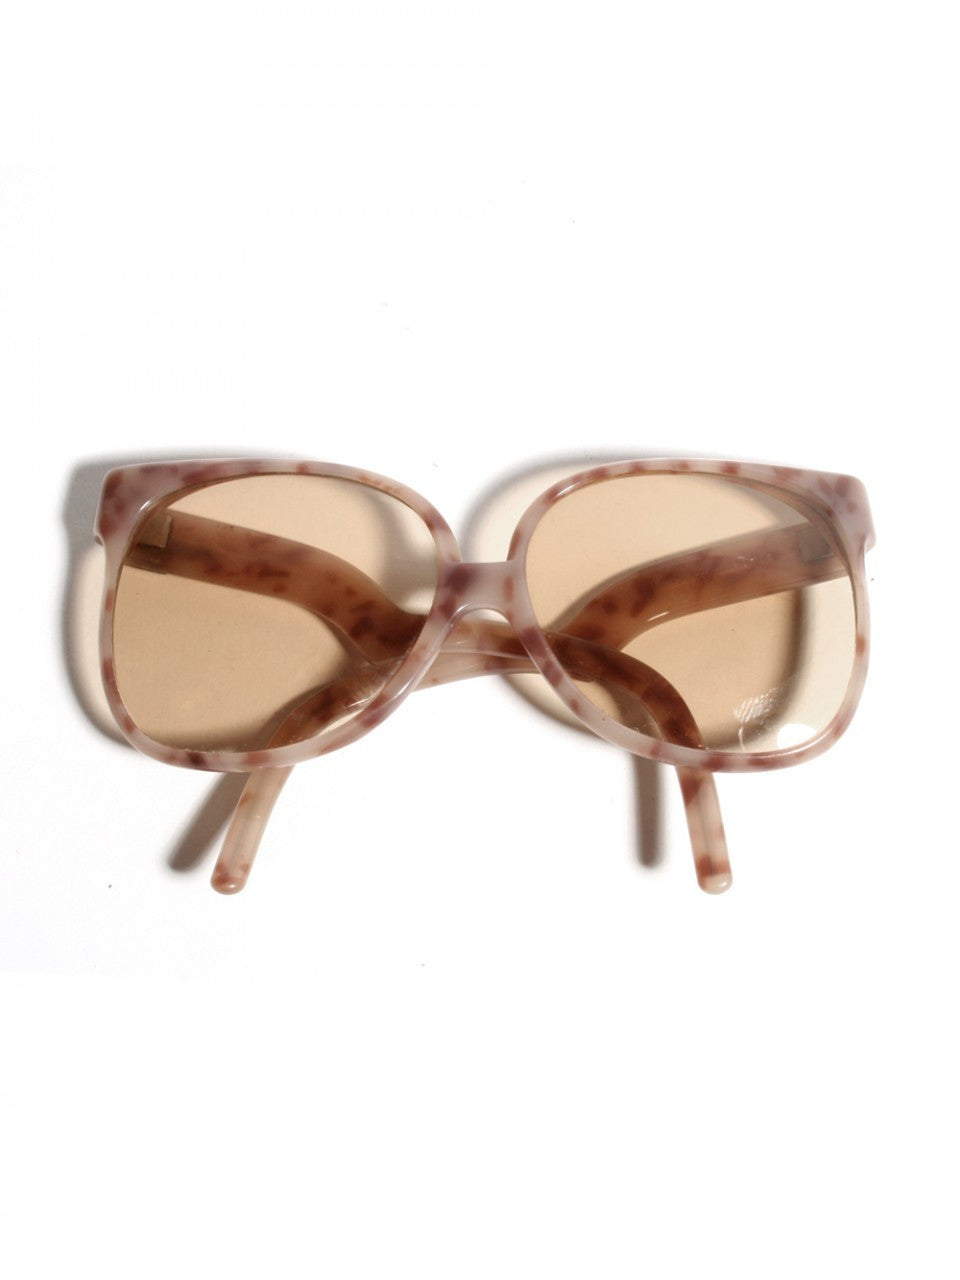 Yves Saint Laurent 1980s Nougat Sunglasses